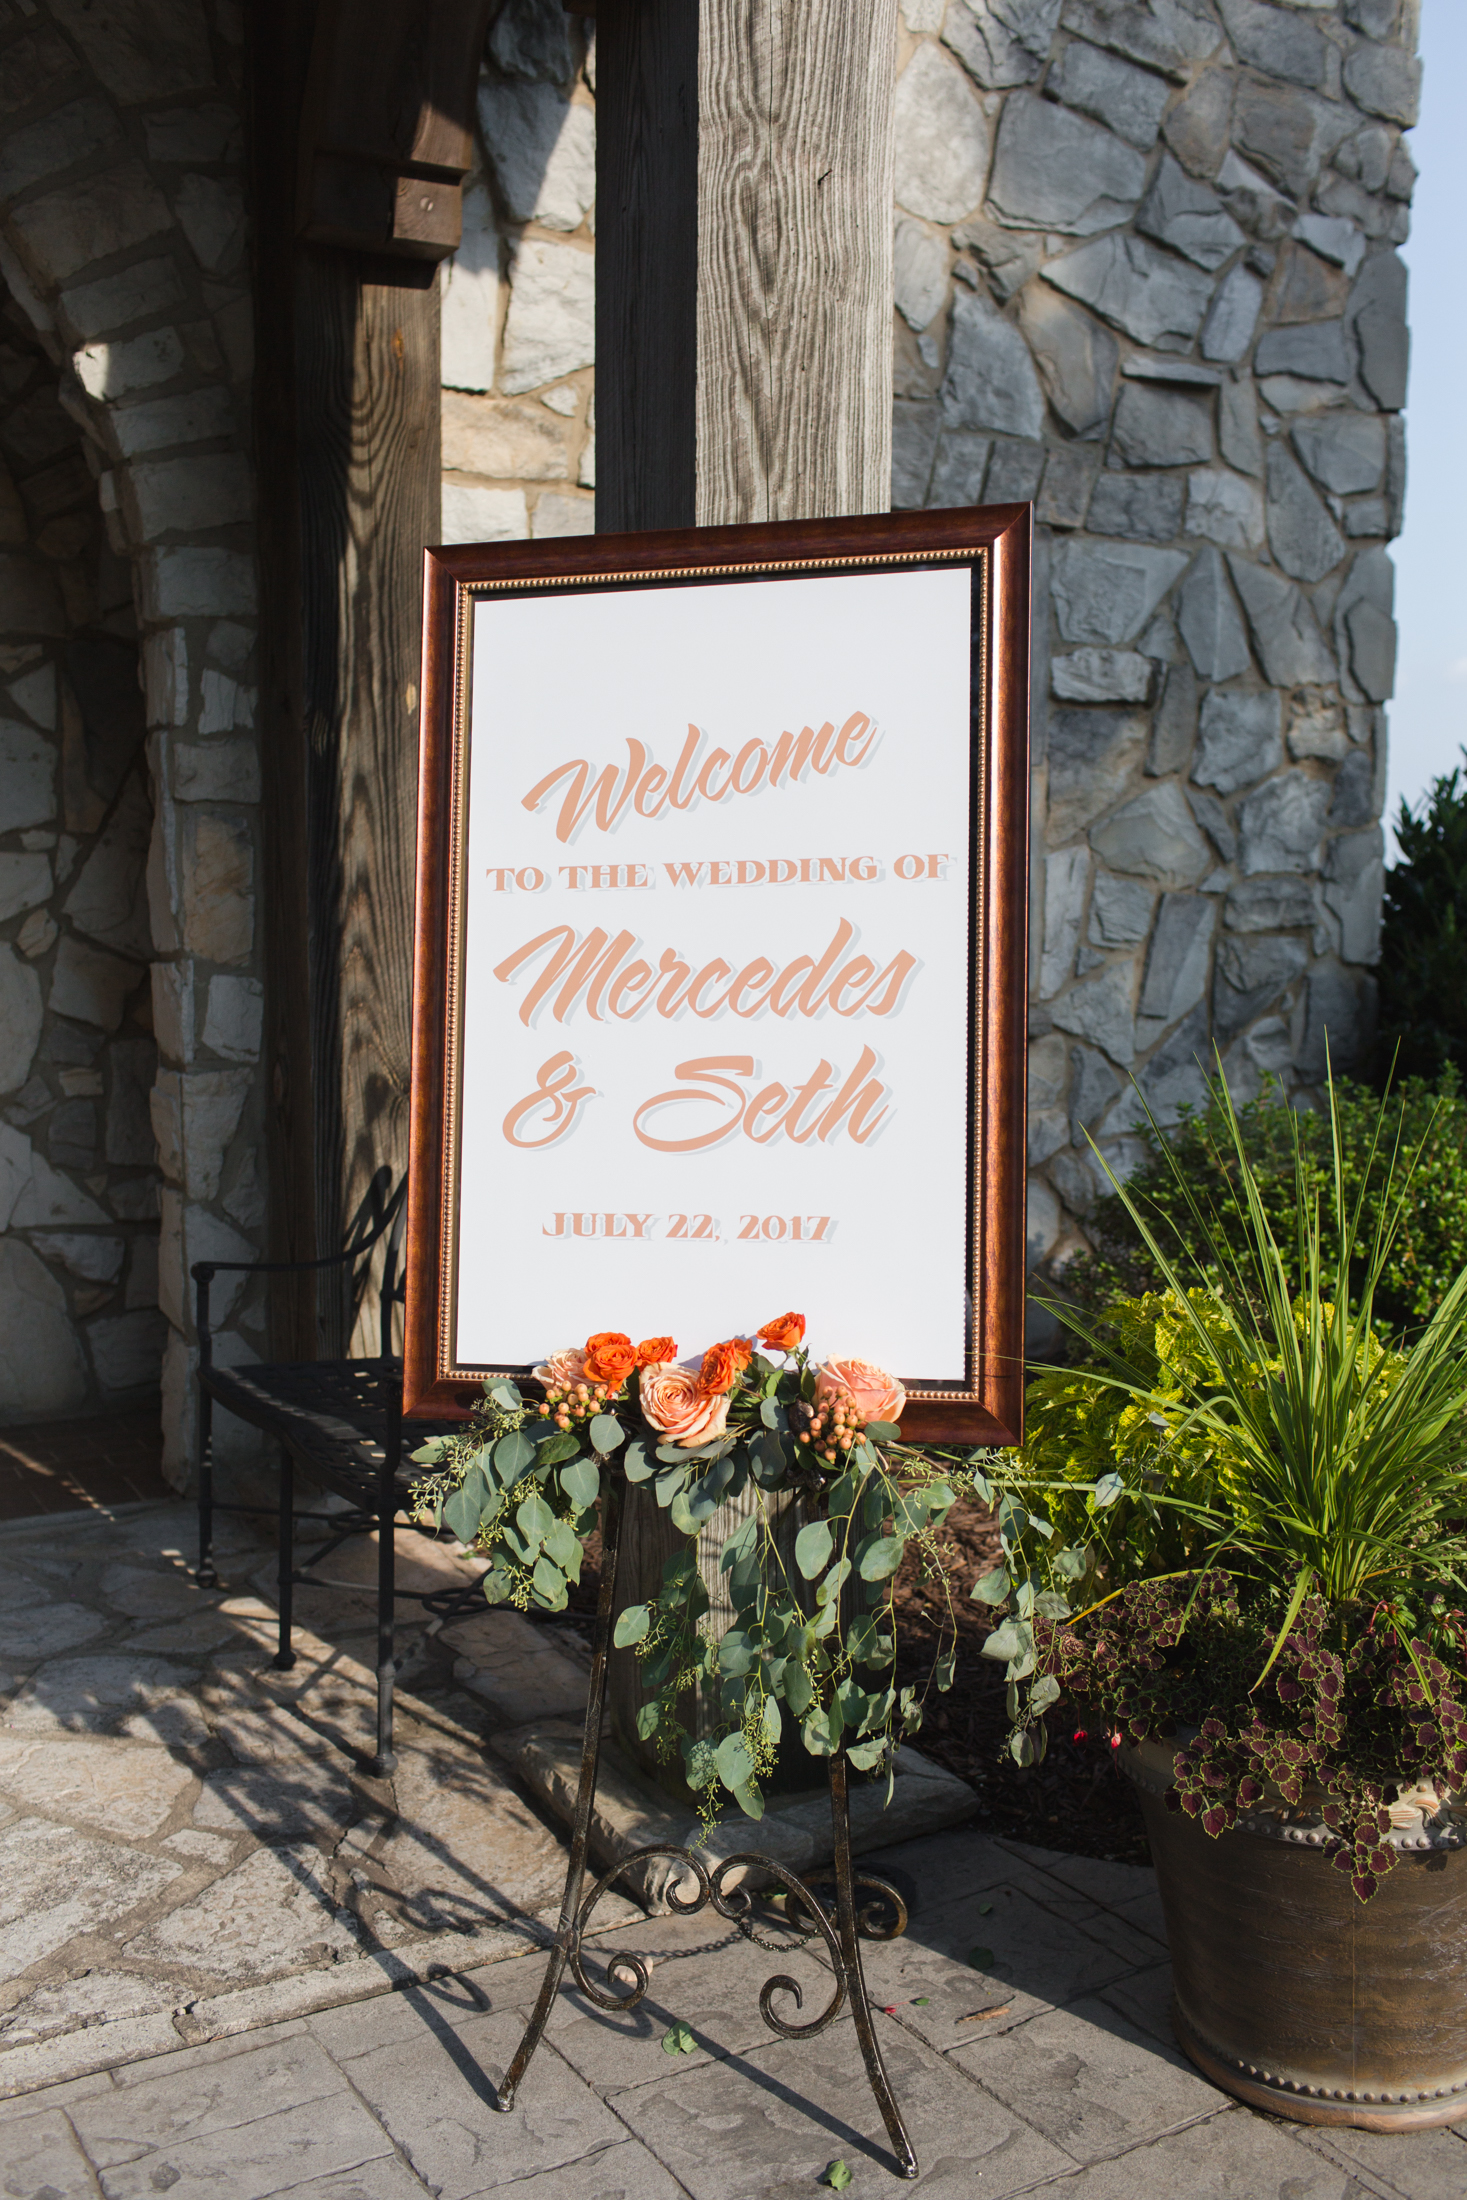 Mercedes+Seth-glassy chapel wedding -2400.jpg